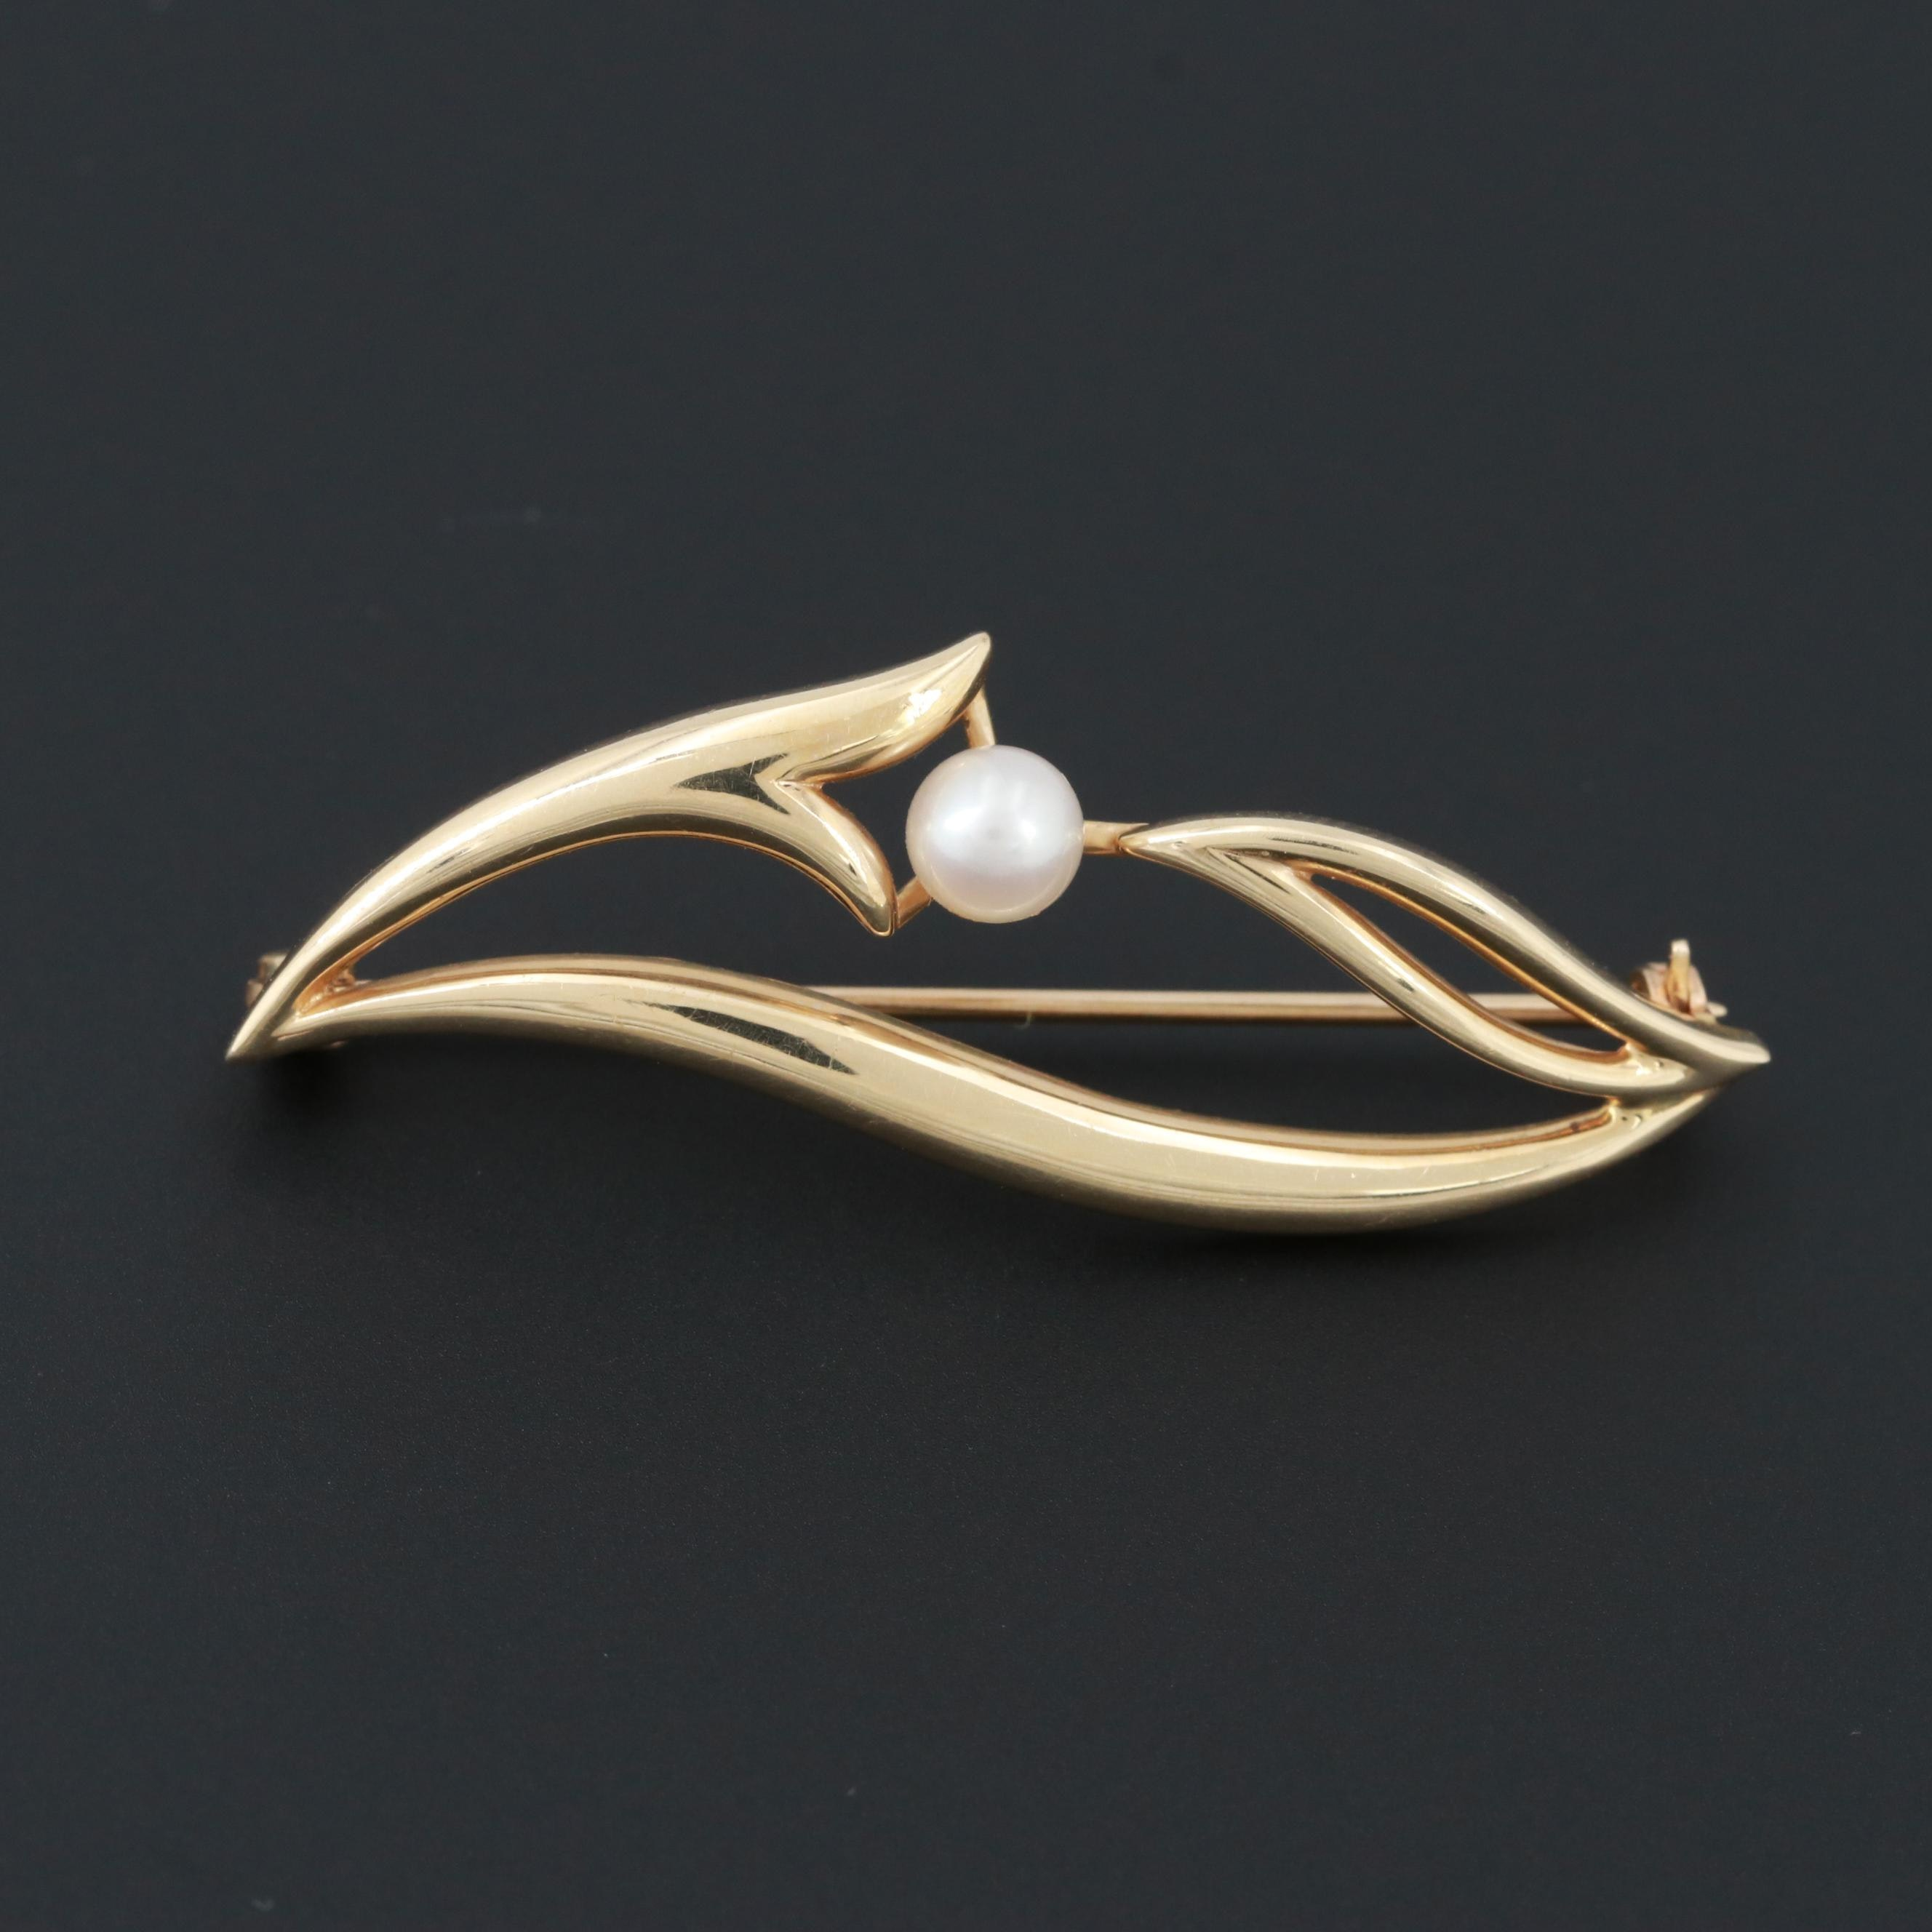 14K Yellow Gold Cultured Pearl Openwork Brooch